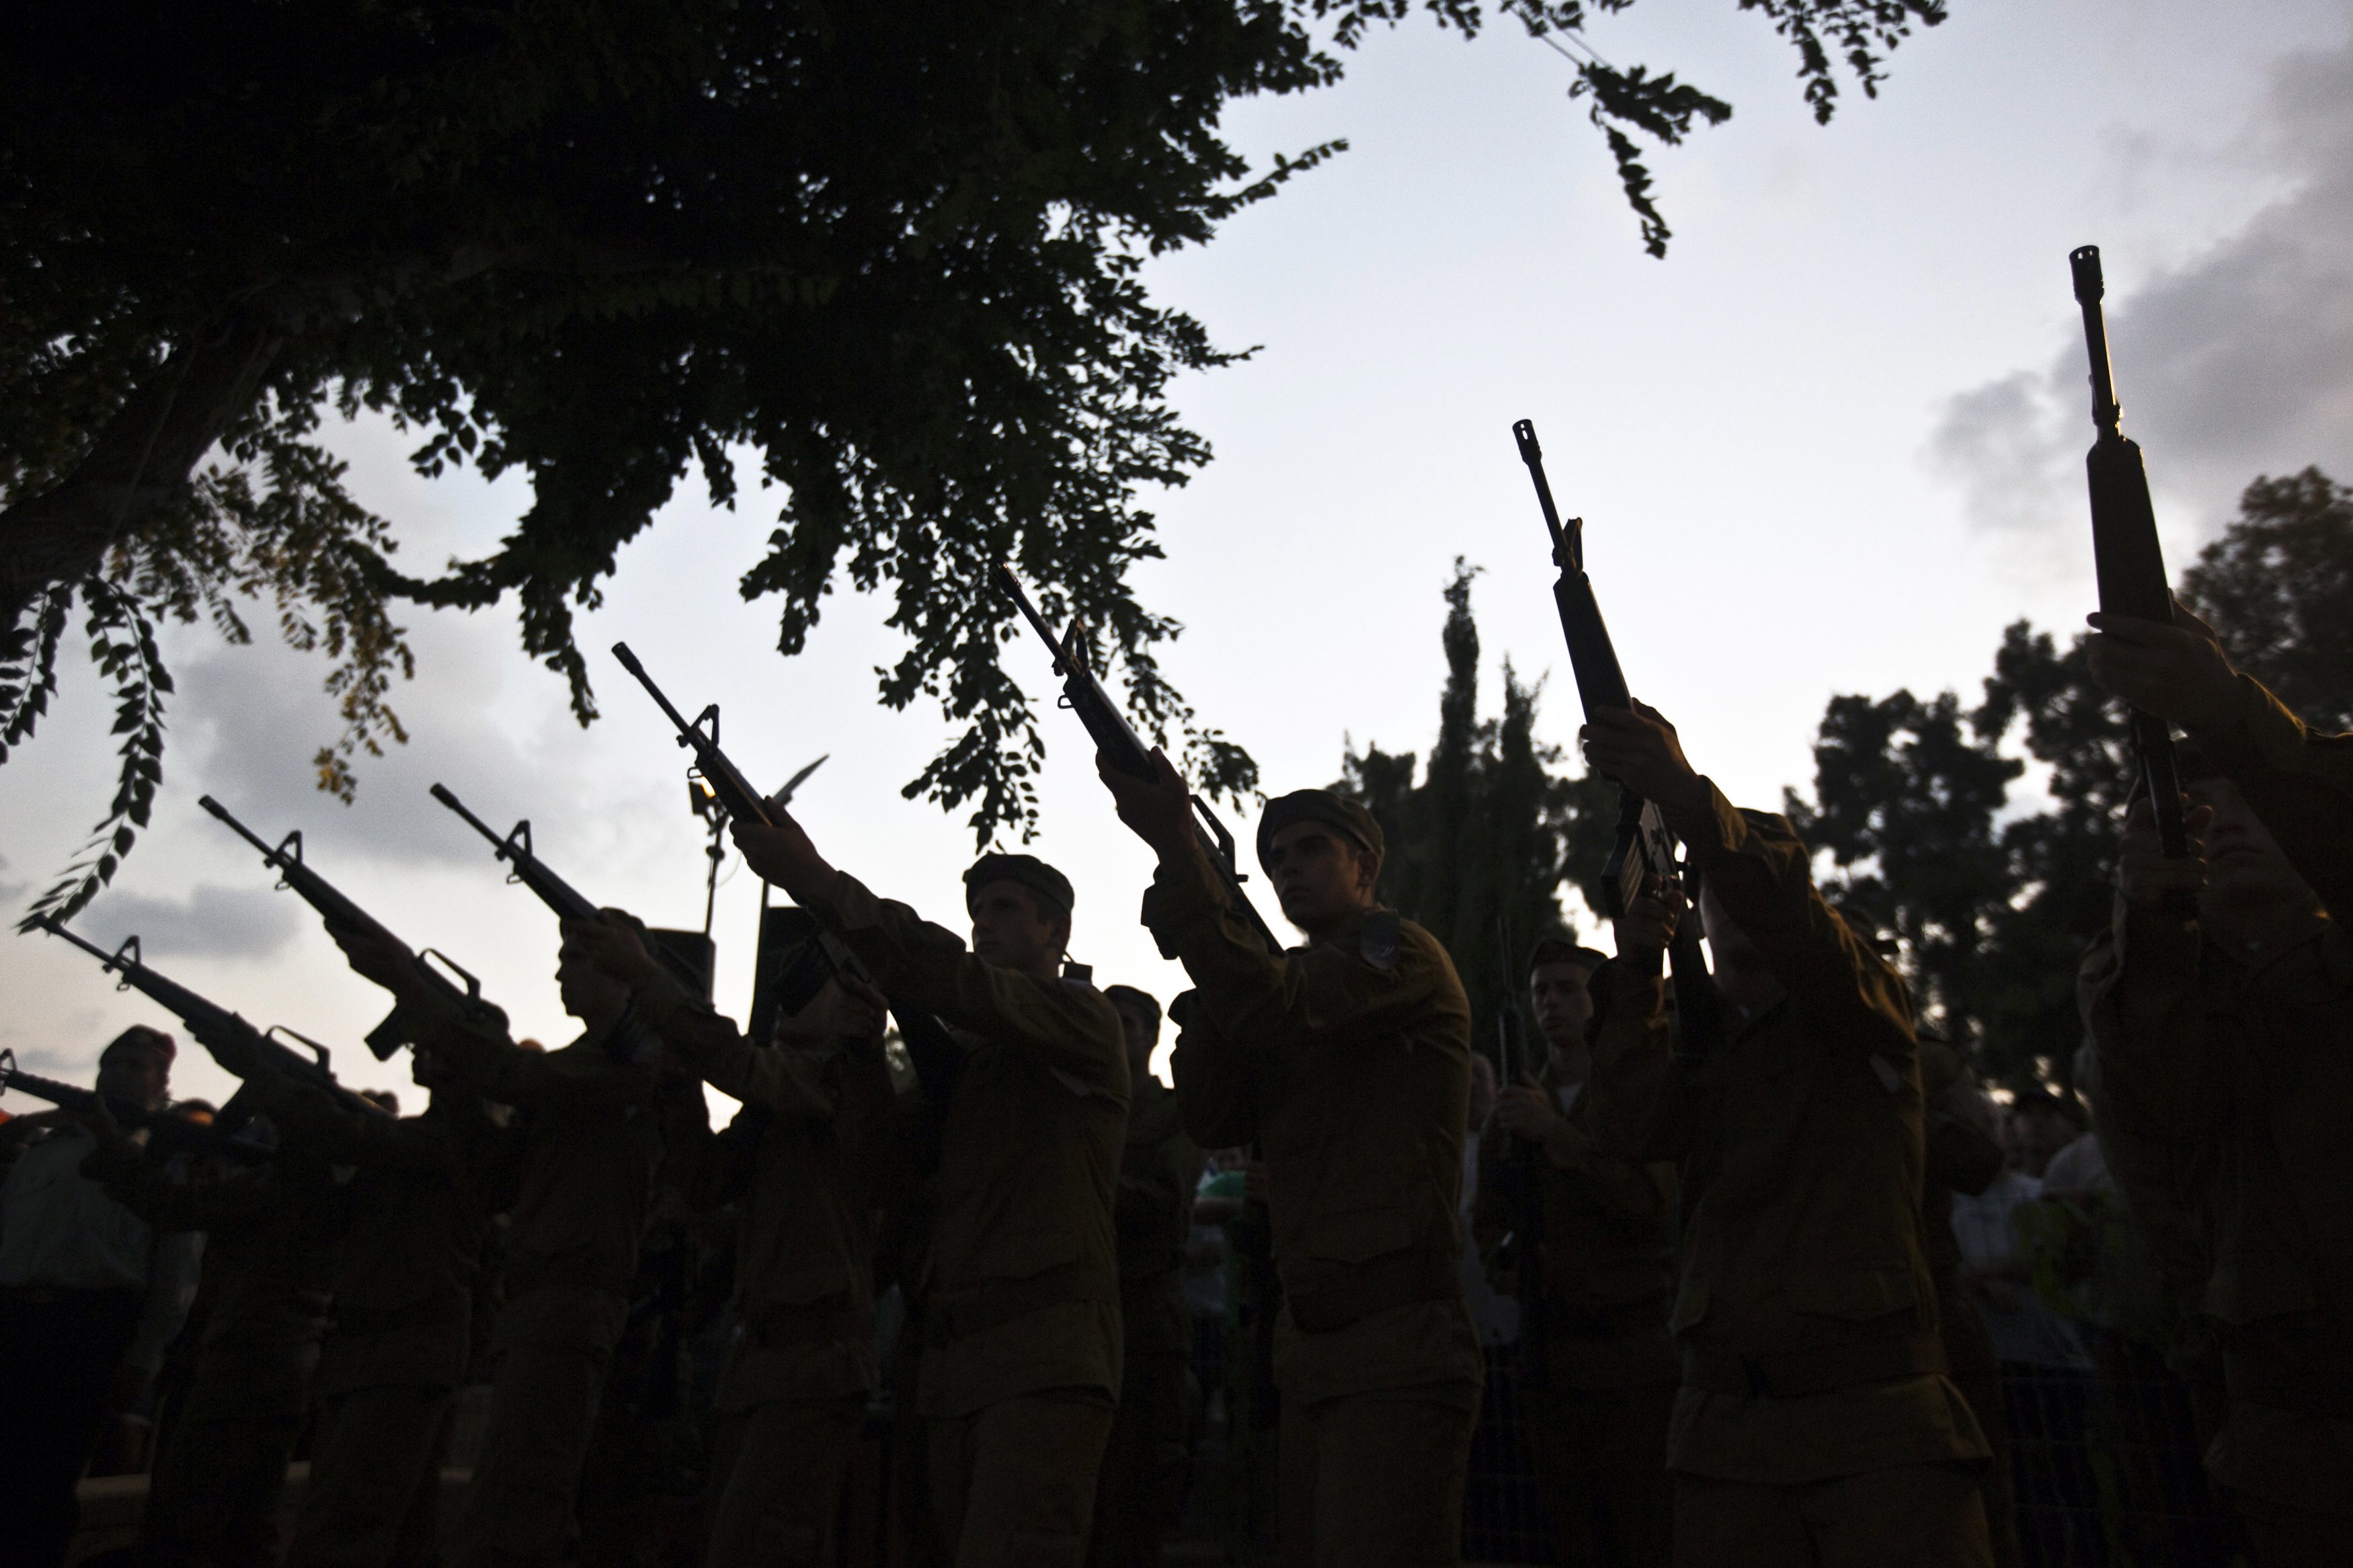 Israeli soldiers fire their weapons during the funeral of their comrade Bnaya Rubel in Holon, near Tel Aviv July 20, 2014.